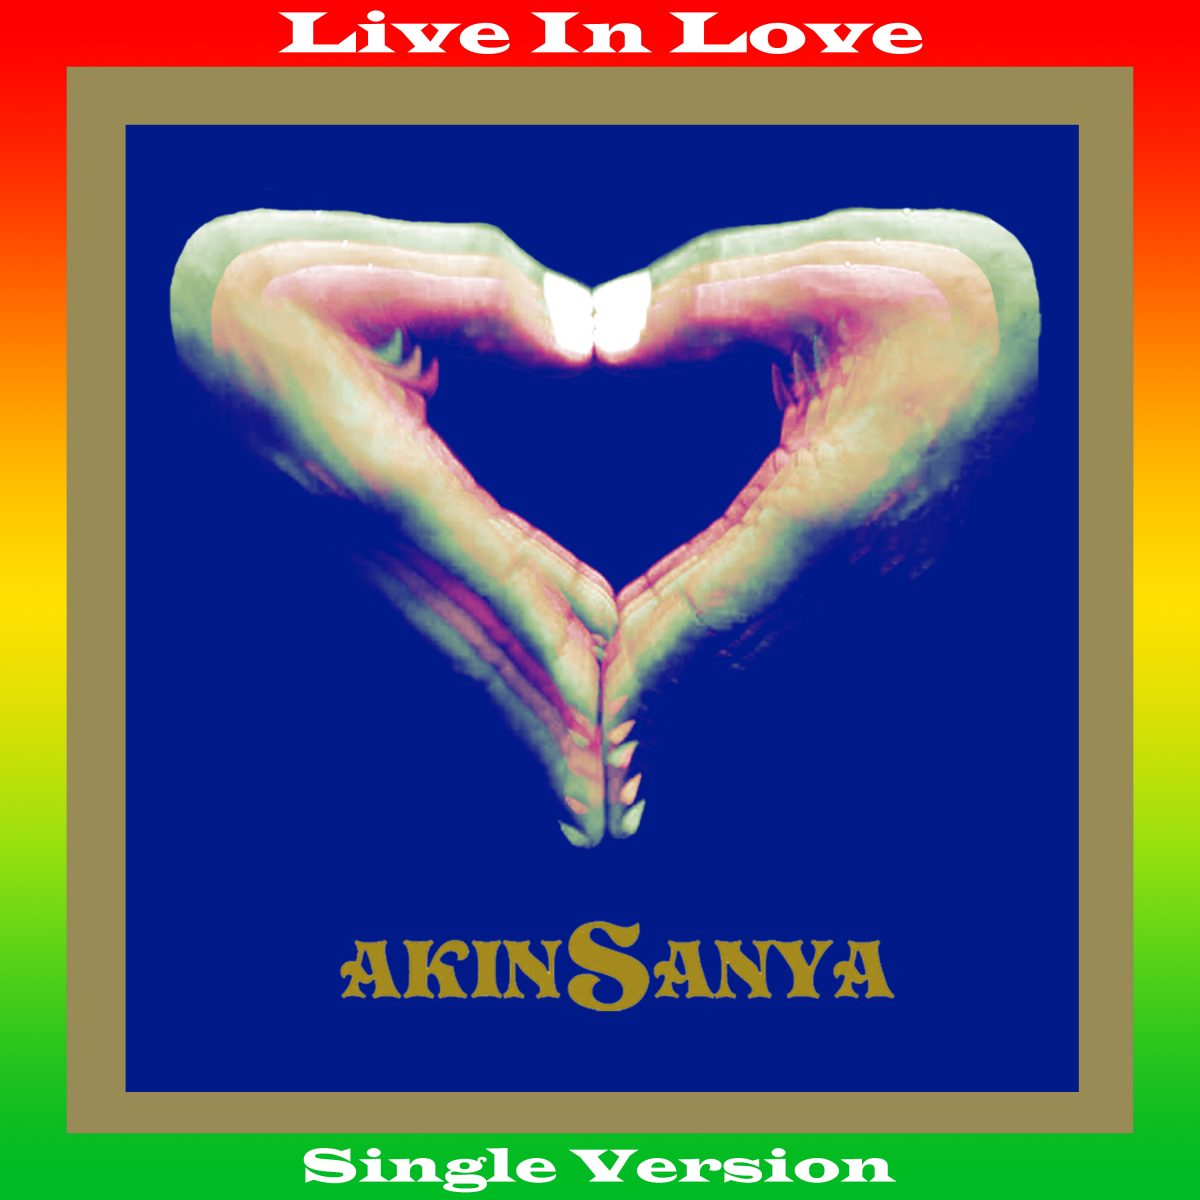 """Akinsanya - Live In Love (Single Version)"" release!!"